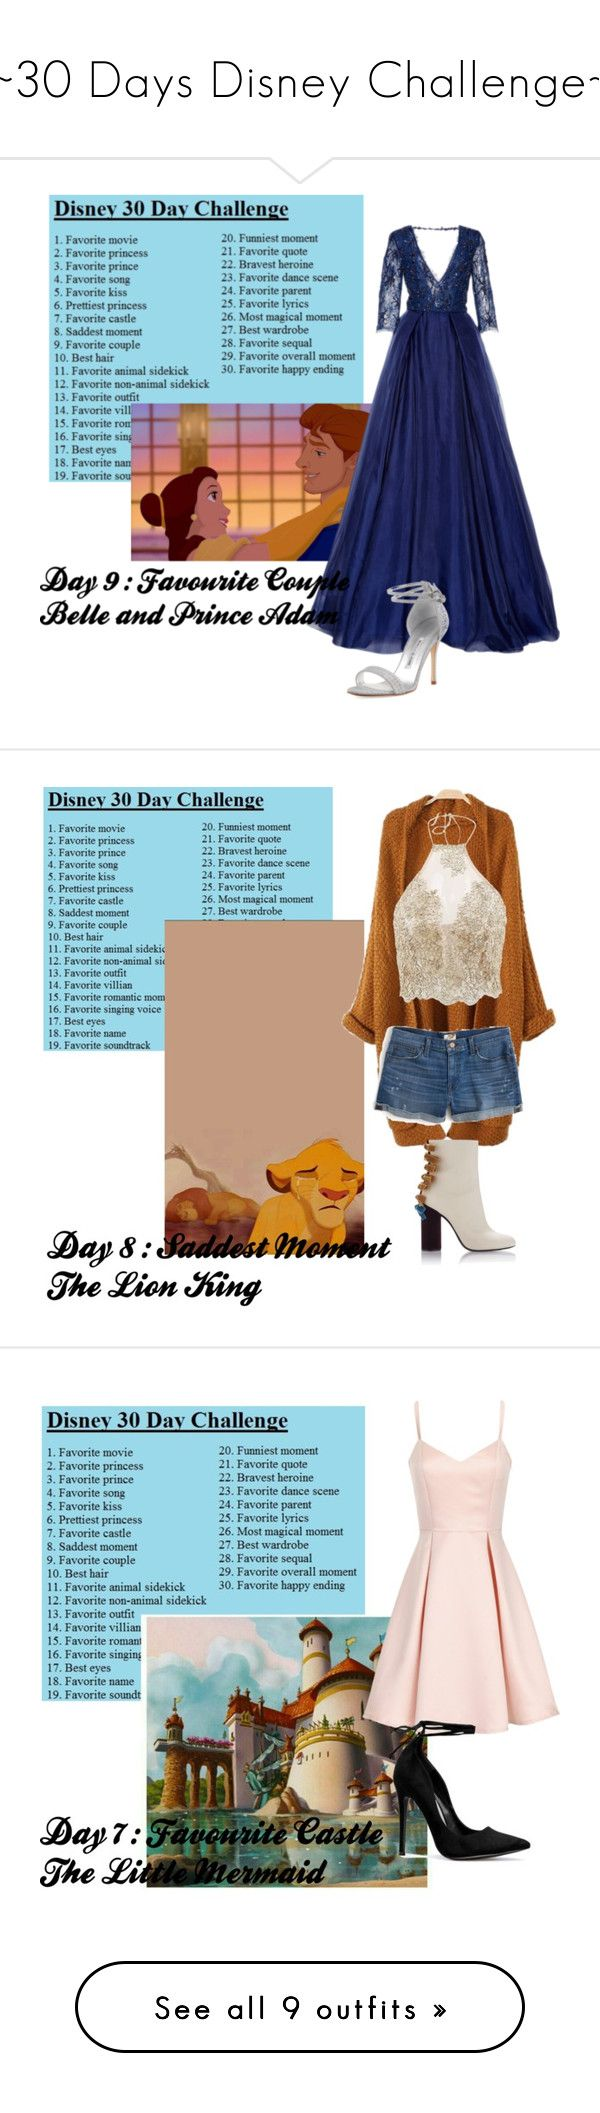 """~30 Days Disney Challenge~"" by ellmoonlightqueen ❤ liked on Polyvore featuring Disney, Manolo Blahnik, J.Crew, Girls On Film, STELLA McCARTNEY, Alexander Wang, Yves Saint Laurent, self-portrait, Lands' End and Common Projects"